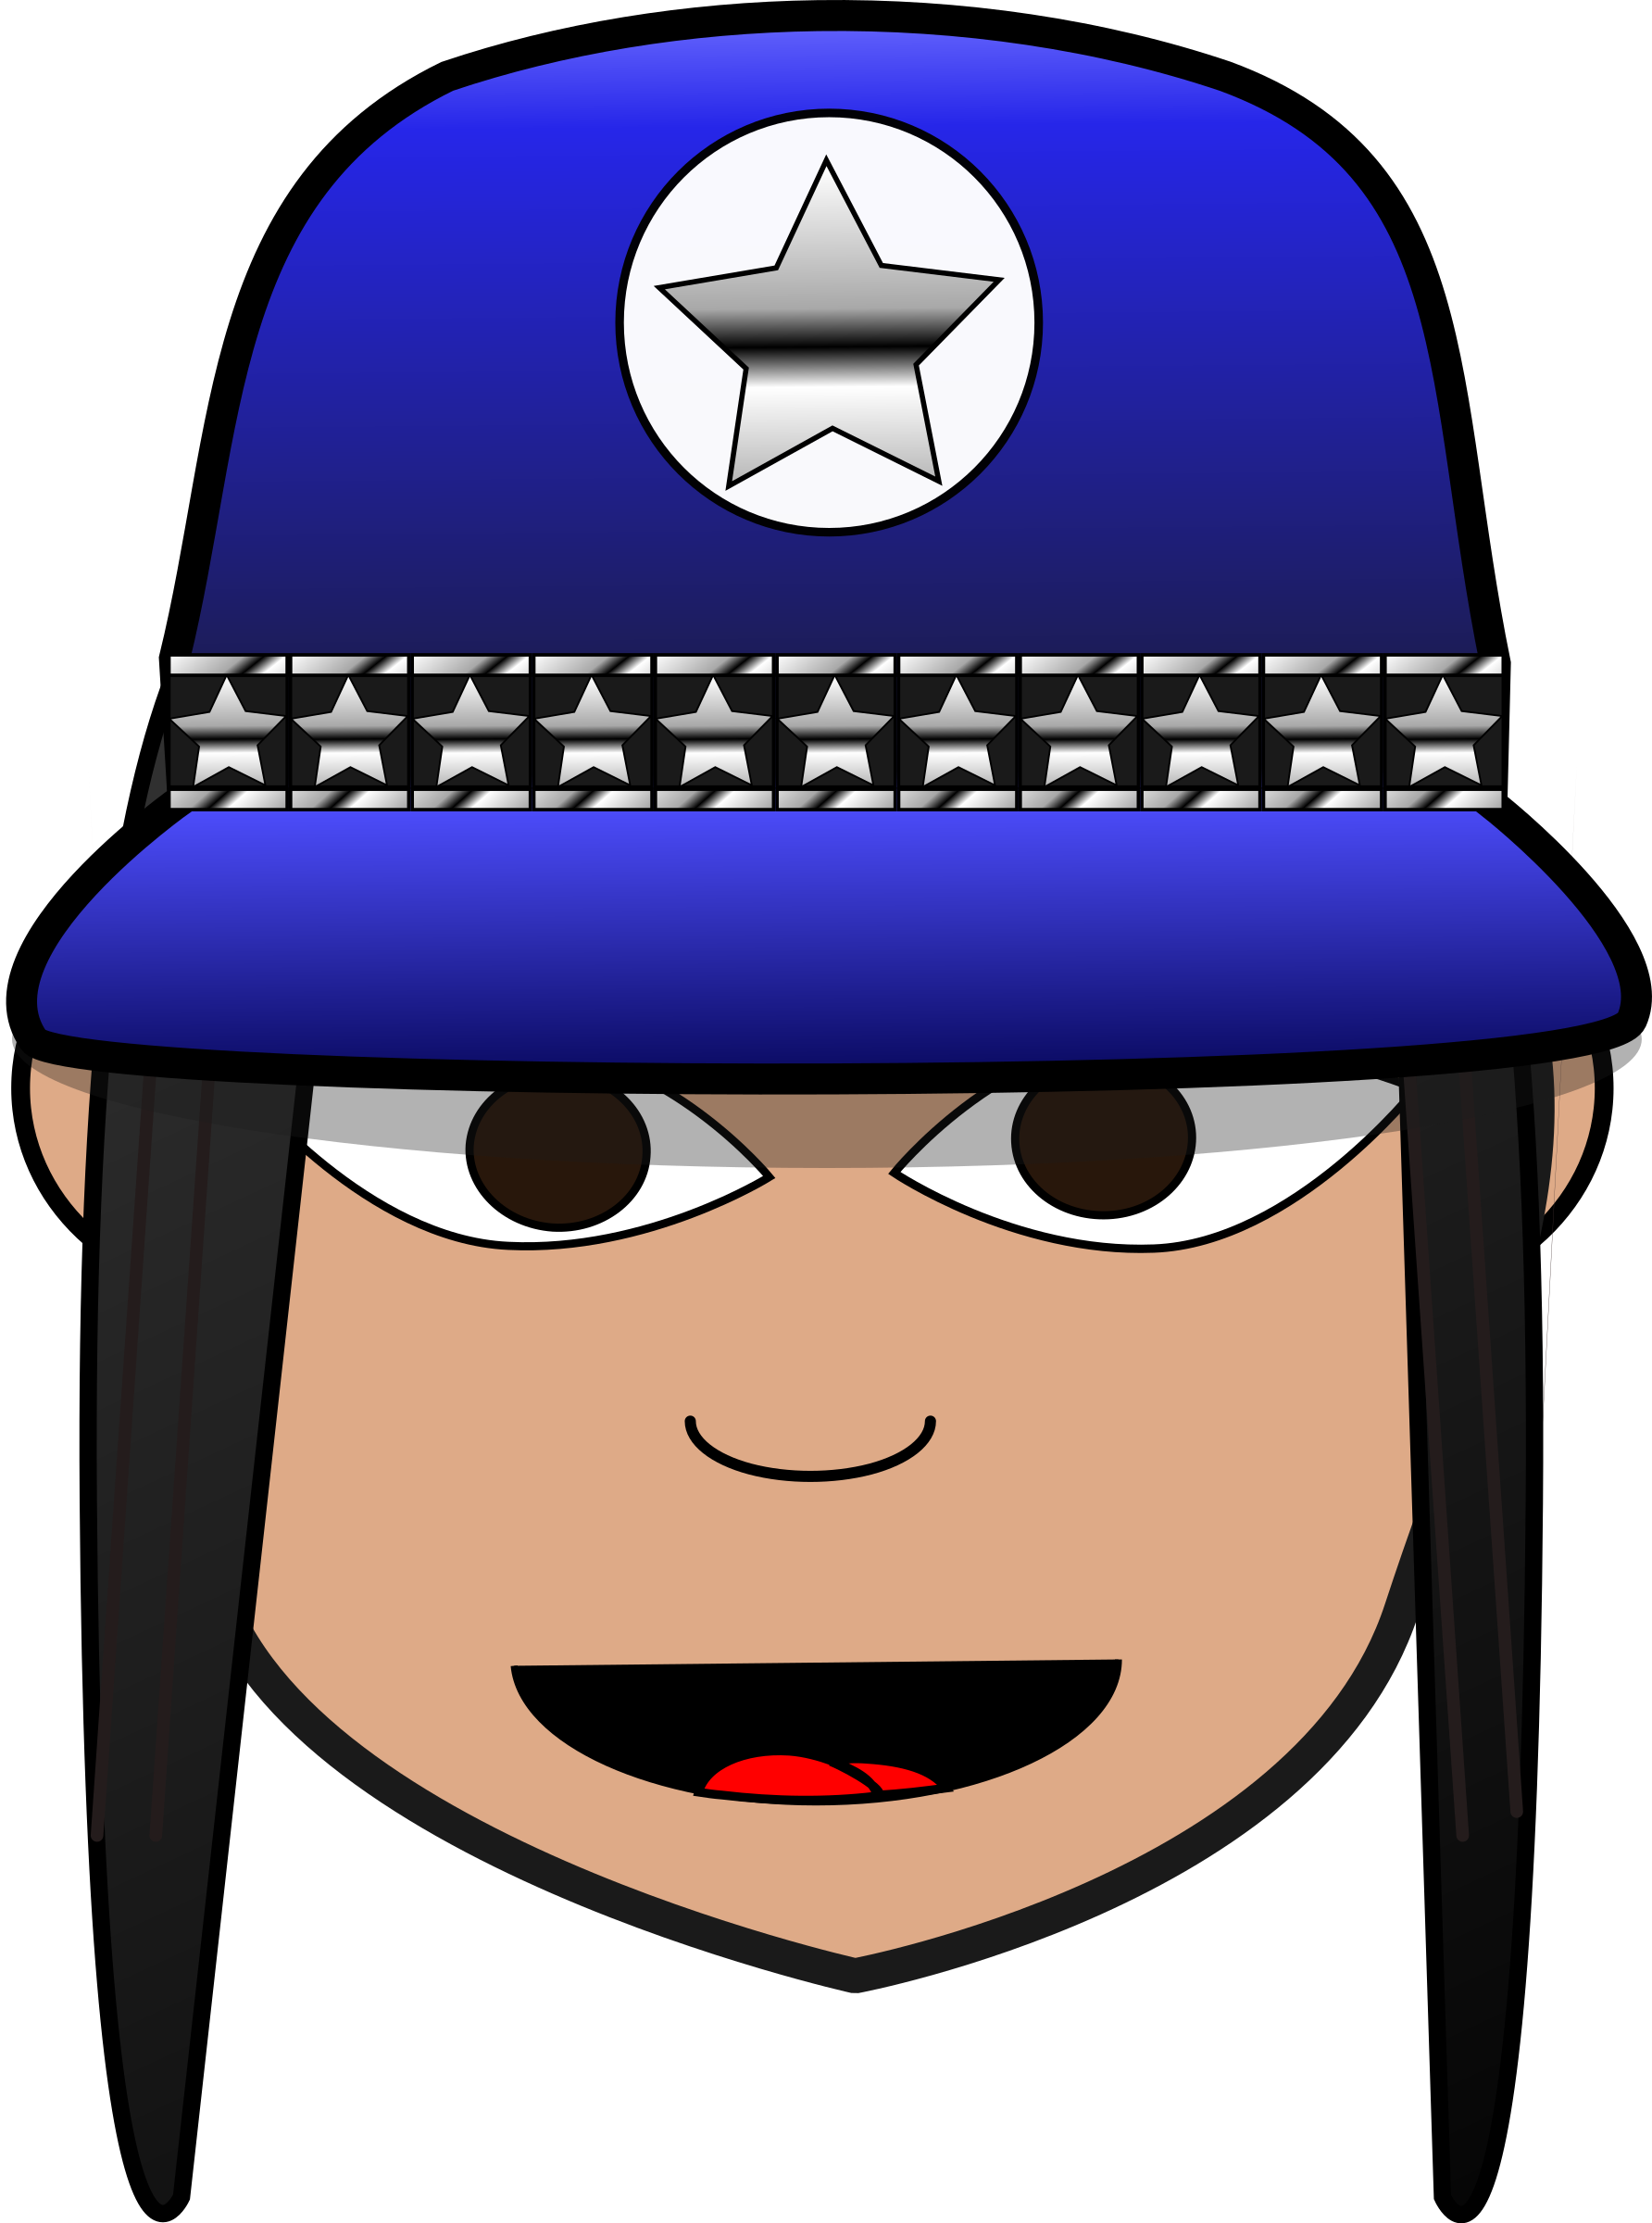 Police Woman 1 by ginkgo